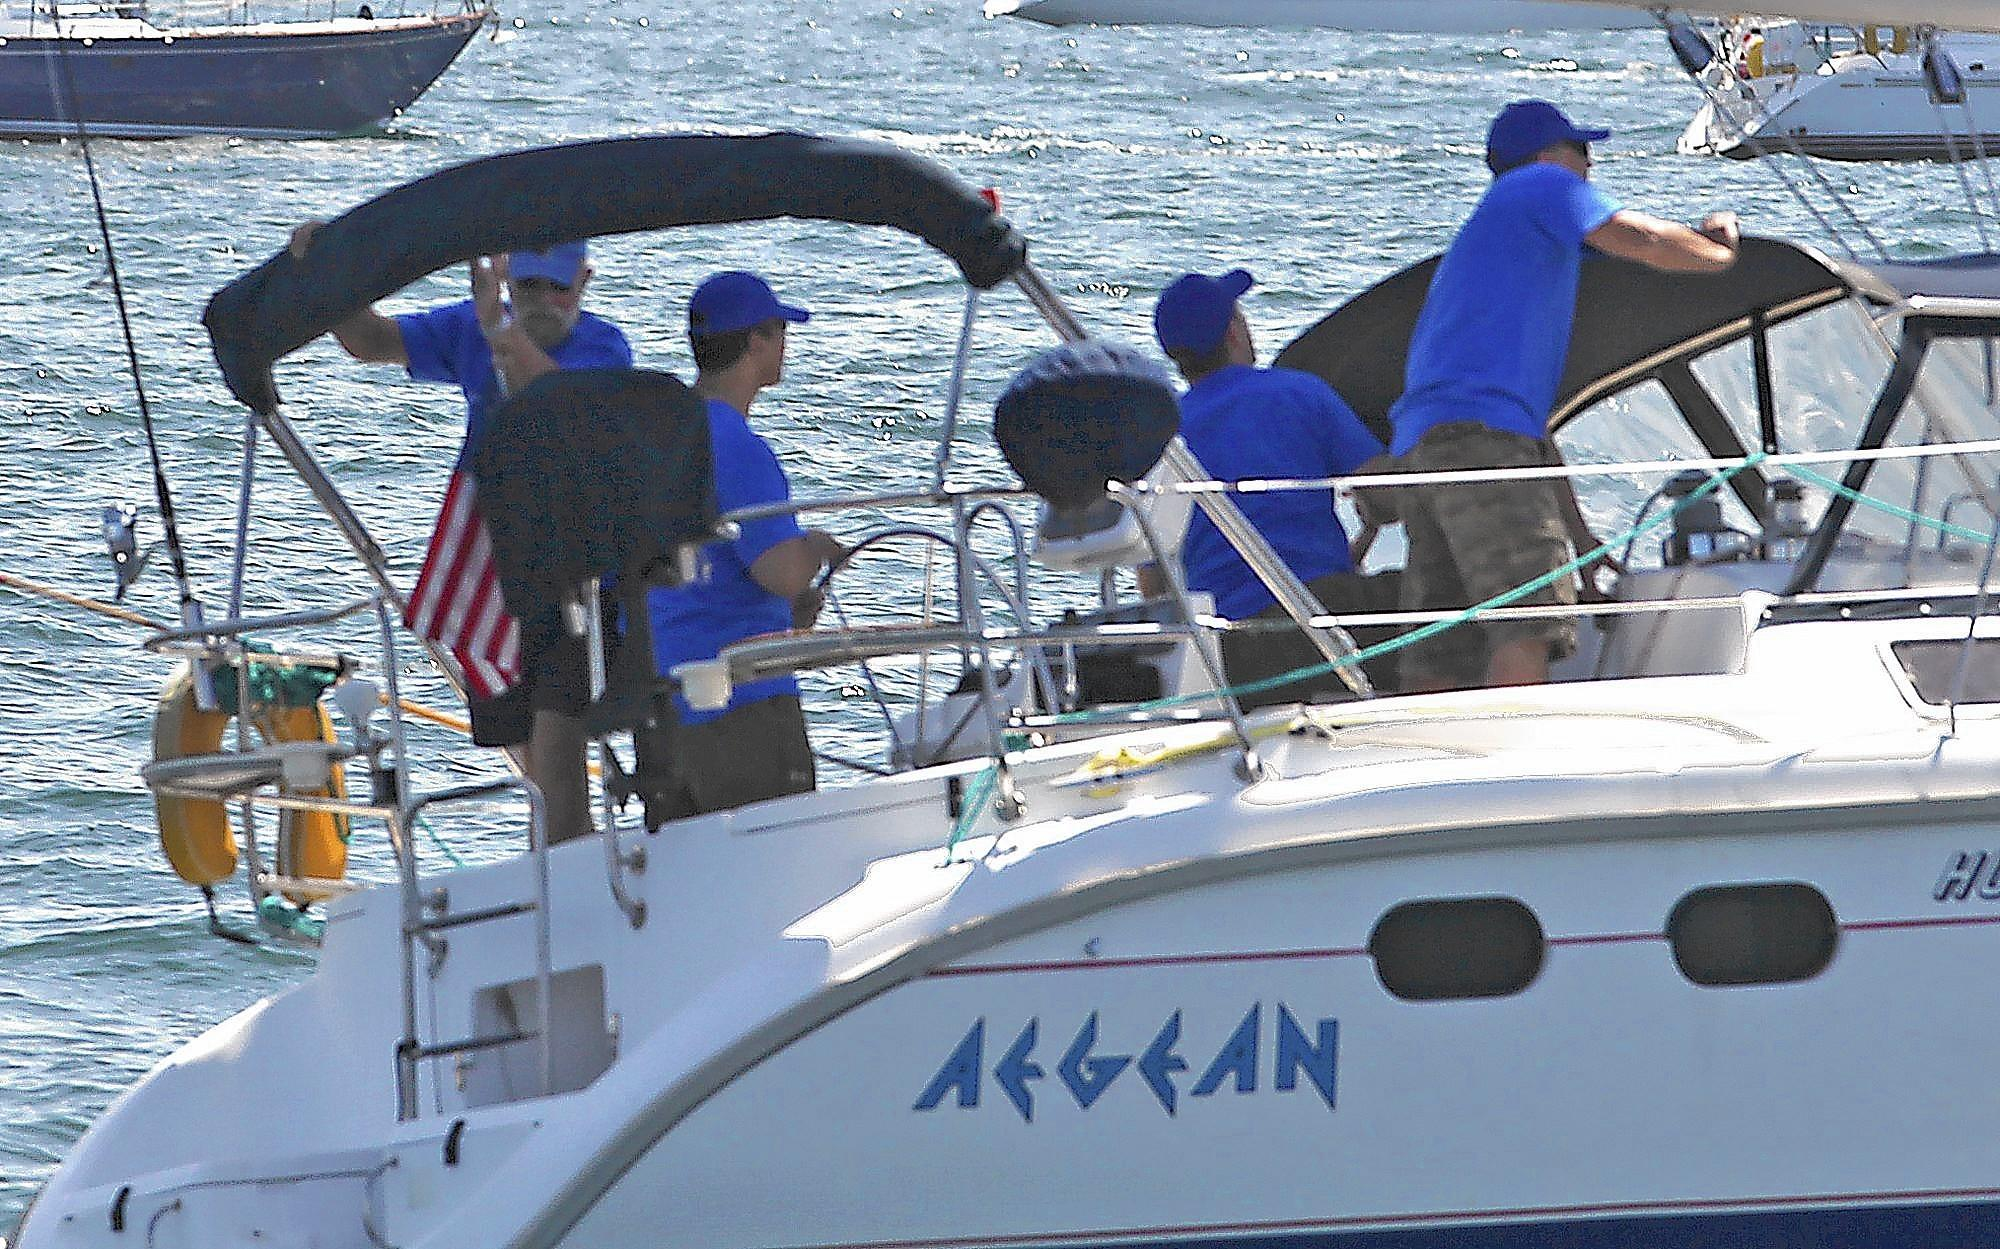 The crew of the Aegean at the start of the 2012 Newport to Ensenada Yacht Race. All four men died when the boat crashed into North Coronado Island during the race.